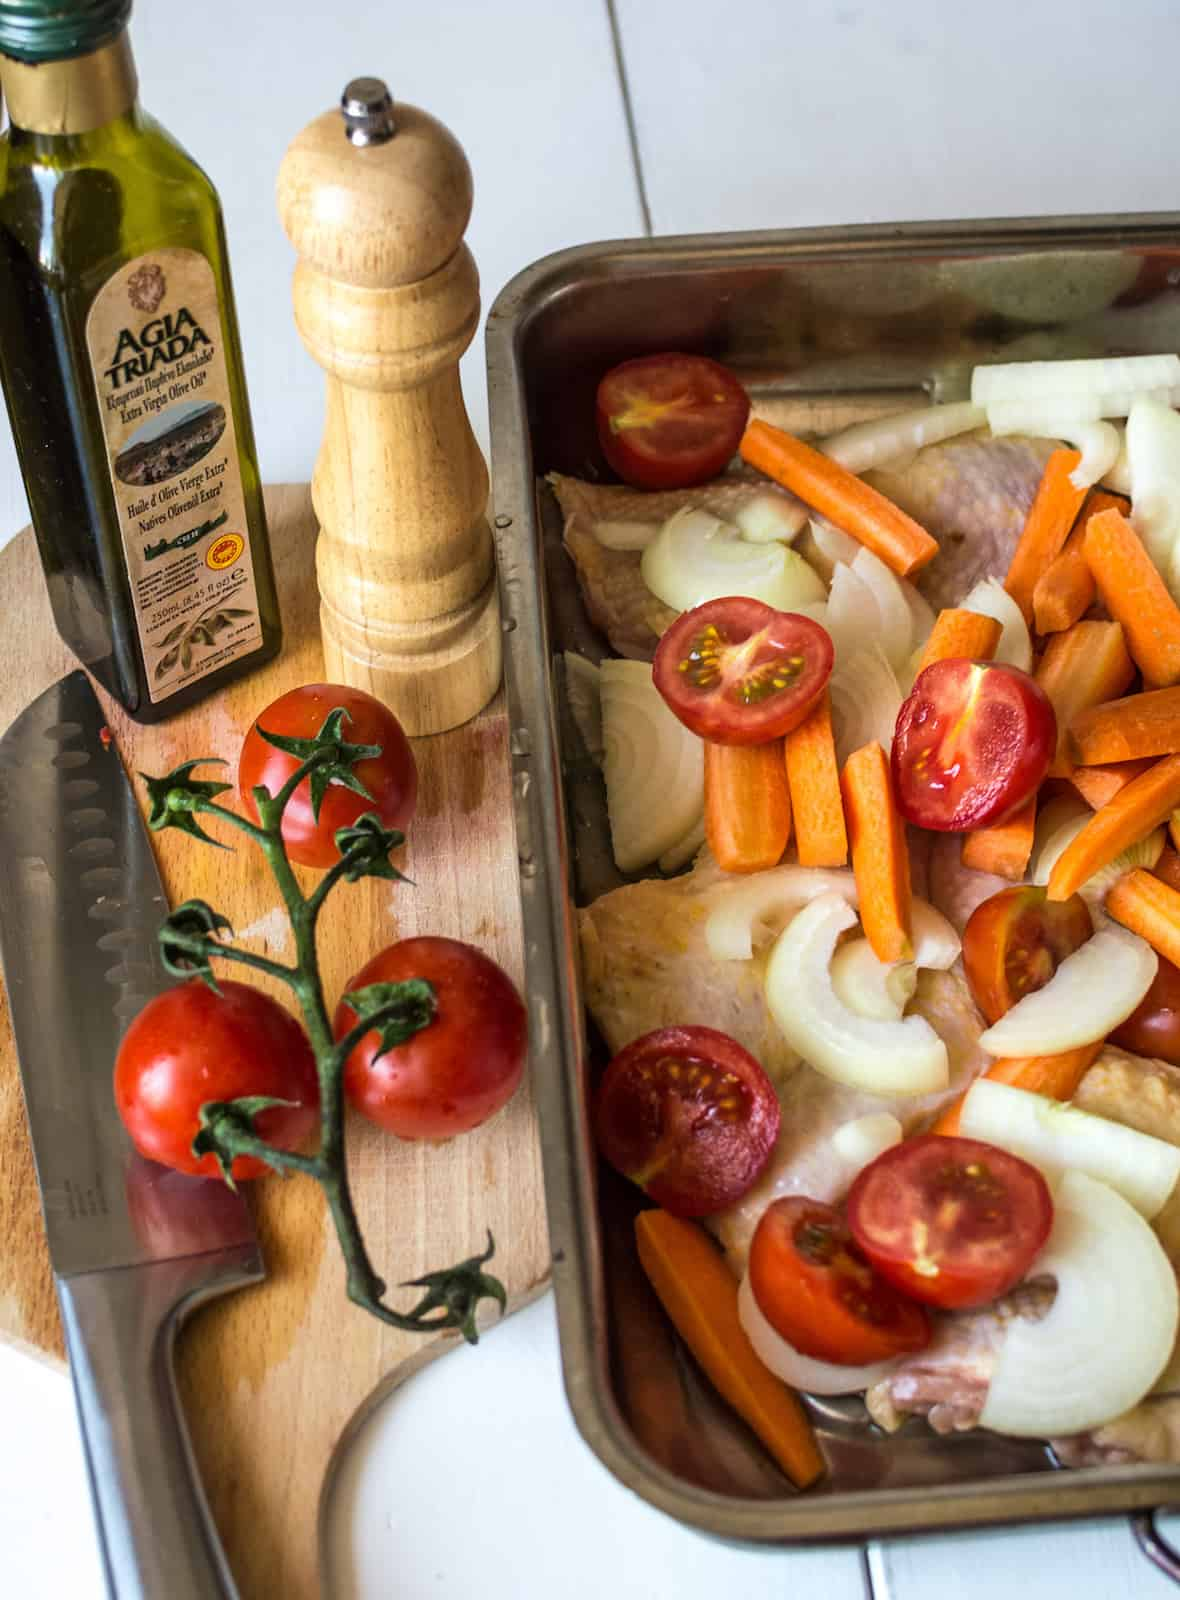 Uncooked chicken and vegetables in a sheet pan next to a cutting board with a chefs knife, tomatoes, olive oil and a pepper grinder on it